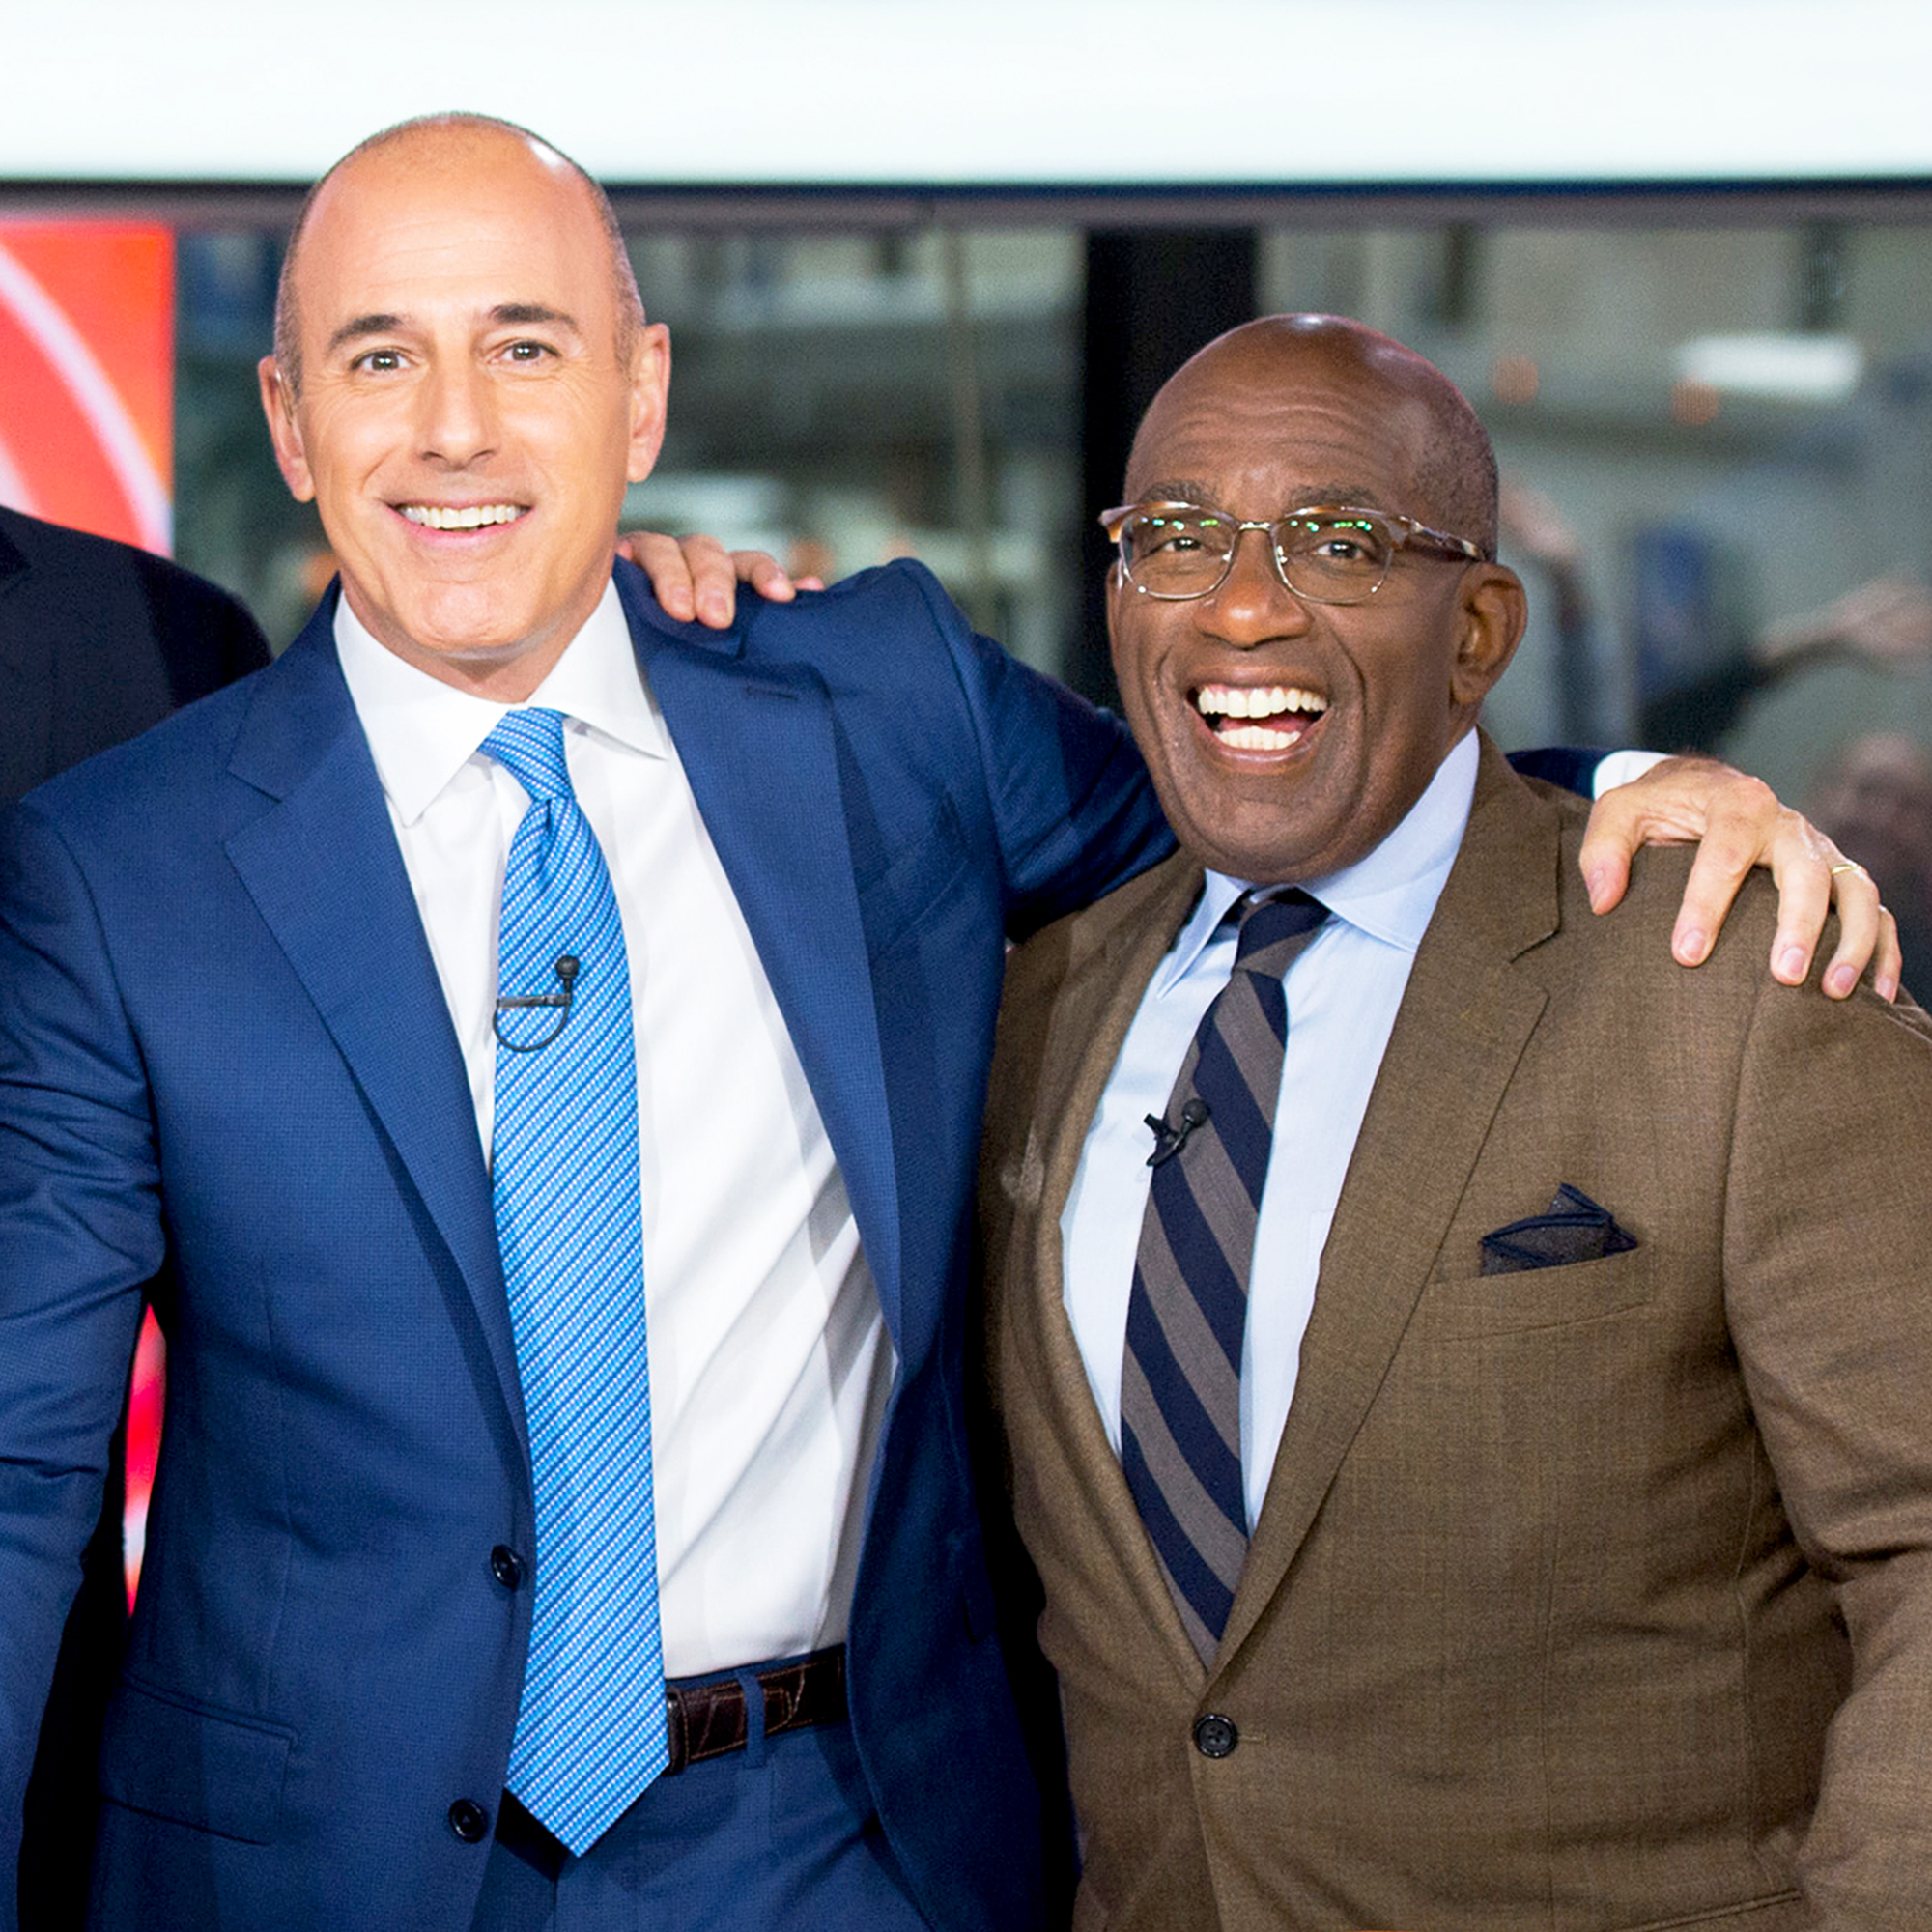 Matt Lauer And Al Roker Didnt Like Each Other At First